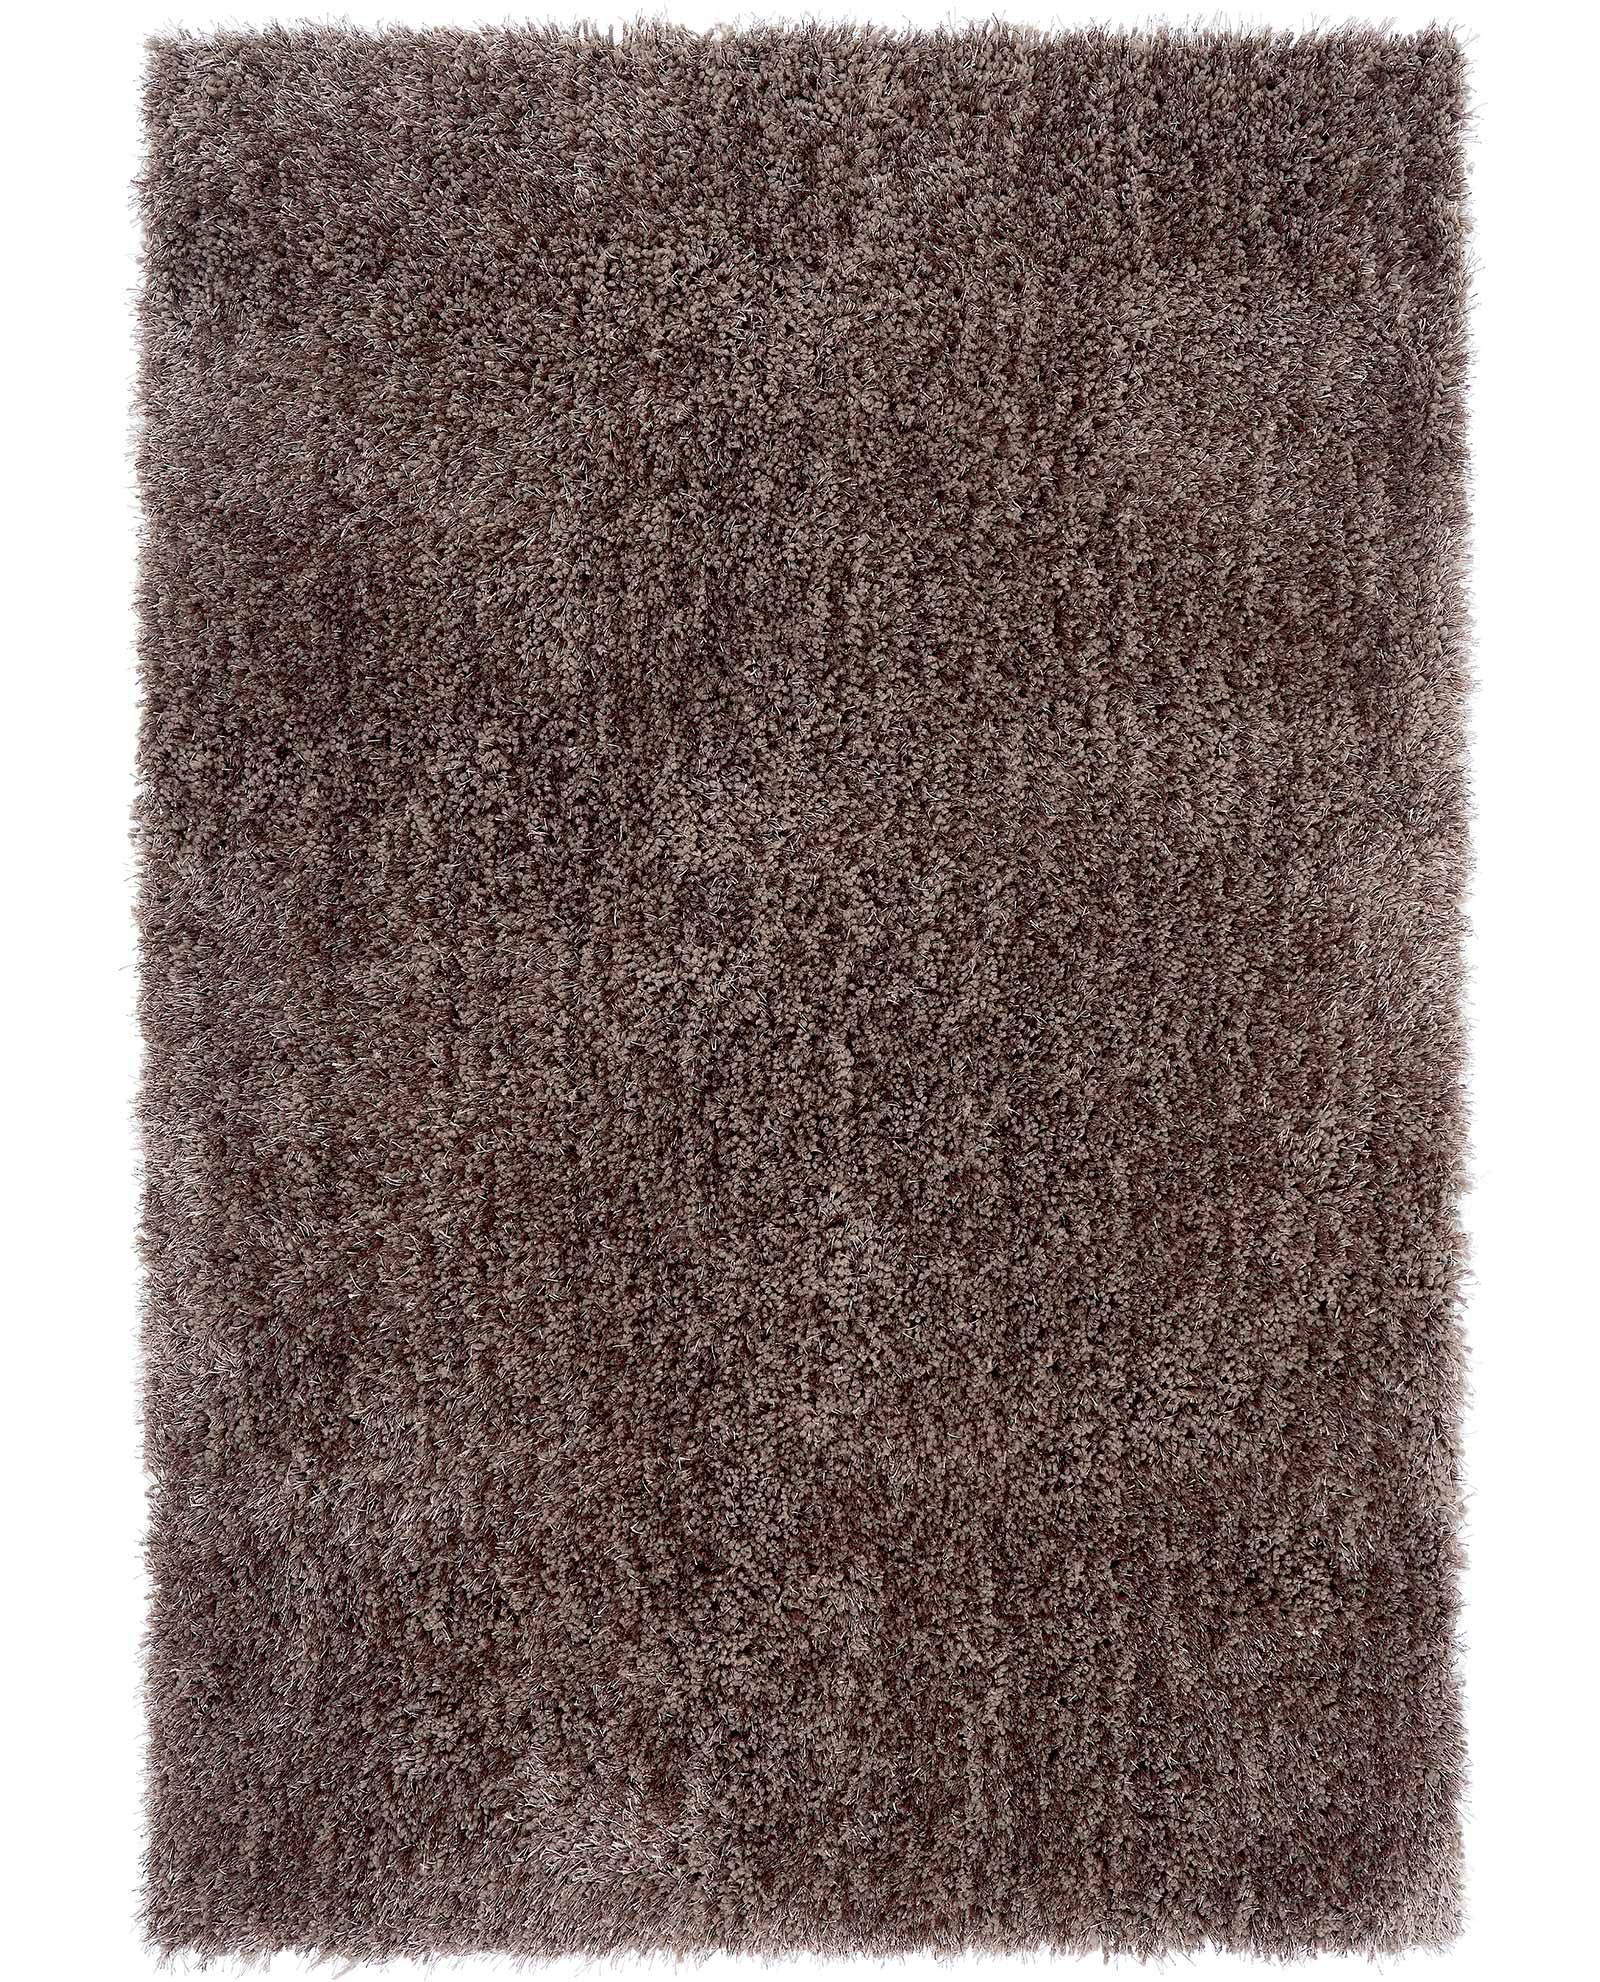 Andessi rug Mythica Taupe 1